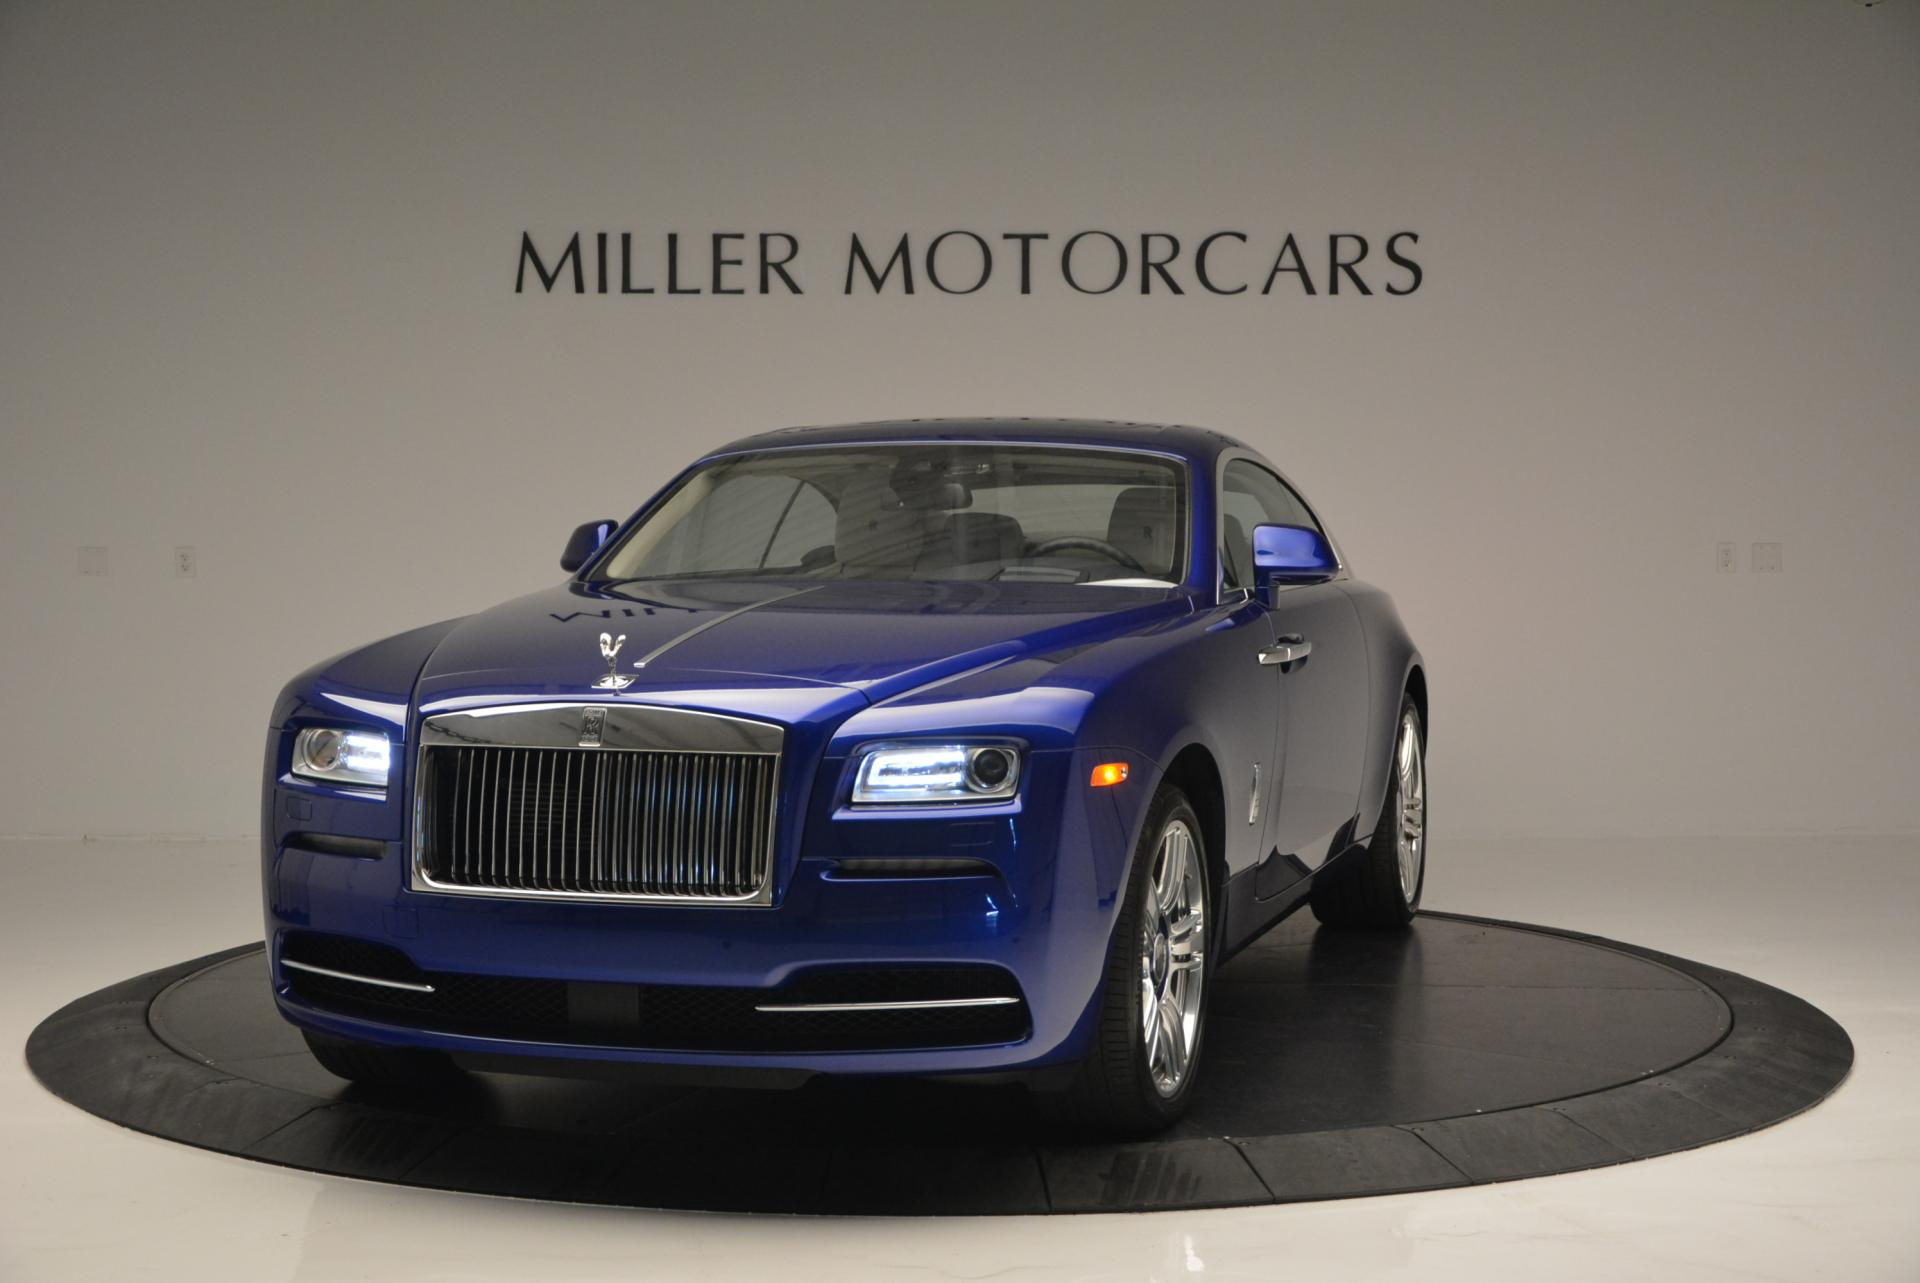 New 2016 Rolls-Royce Wraith  For Sale In Greenwich, CT 221_main